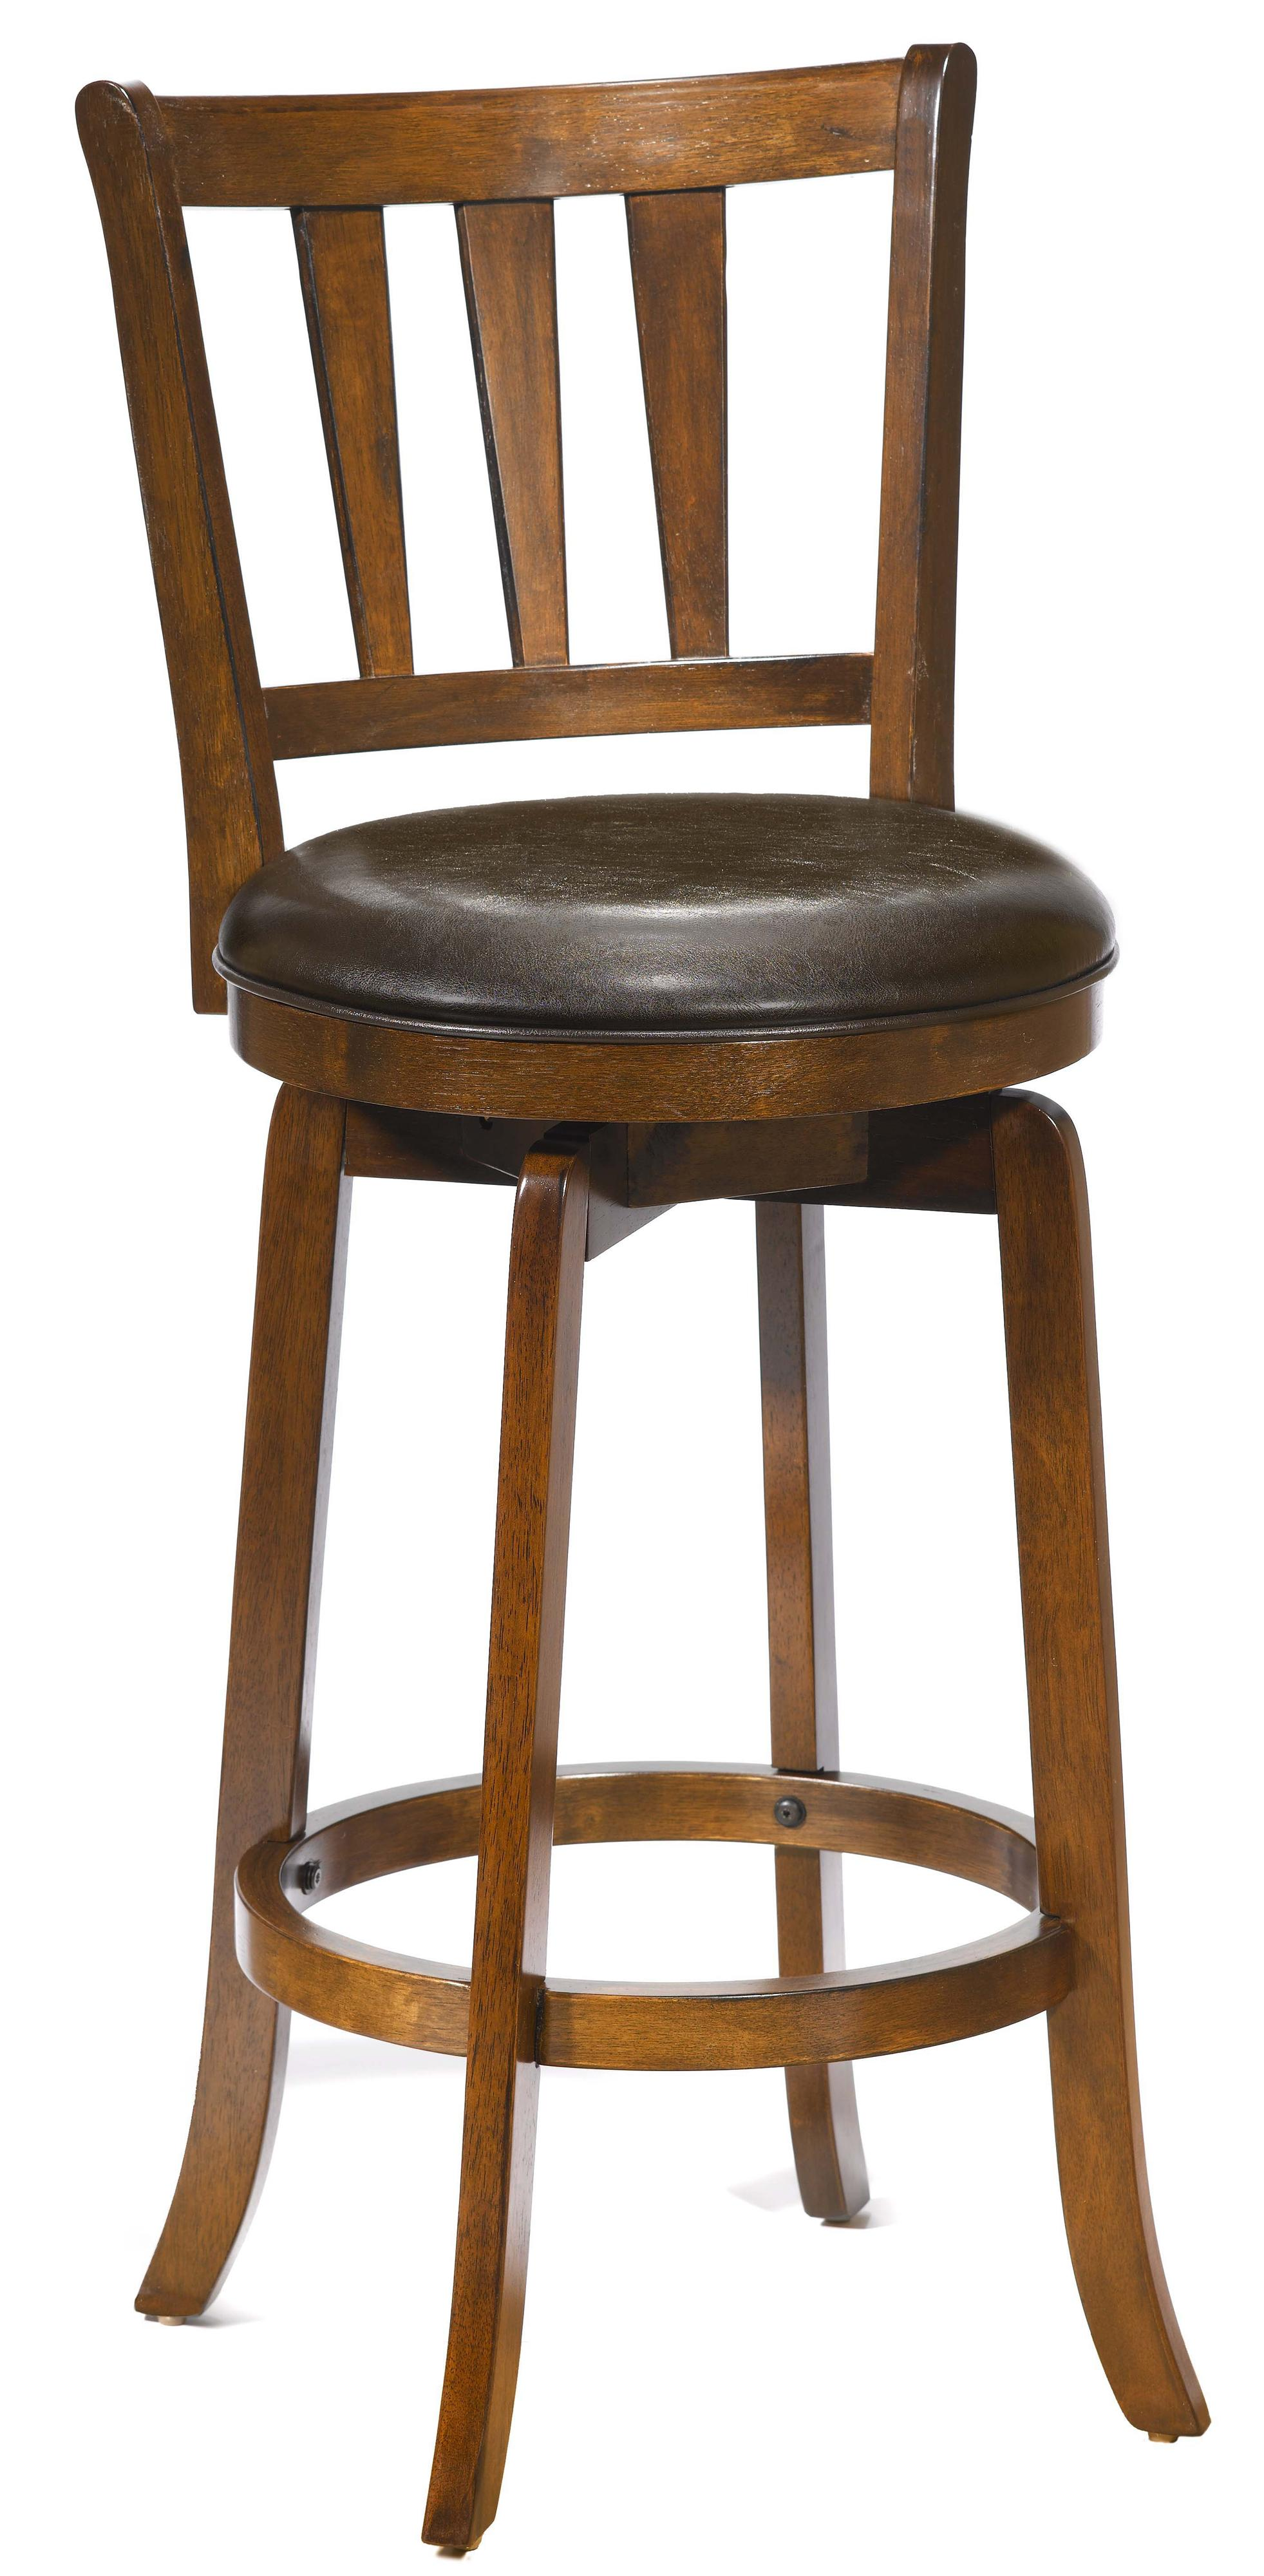 26 counter height presque isle swivel bar stool by for Counter height bar stools